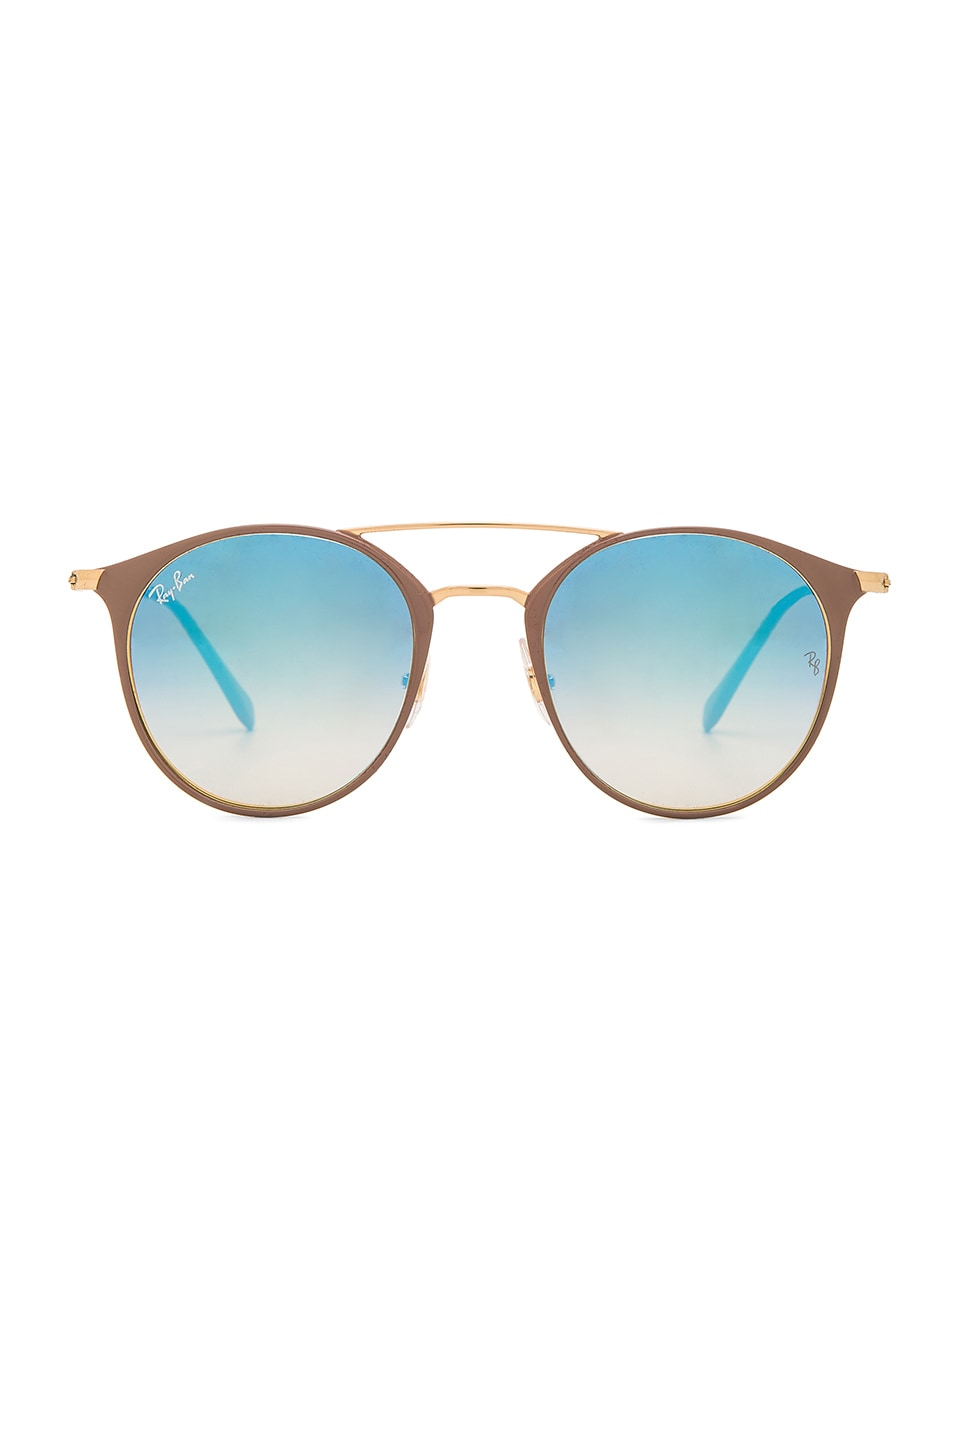 Ray-Ban RB3546 in Gold Top Beige